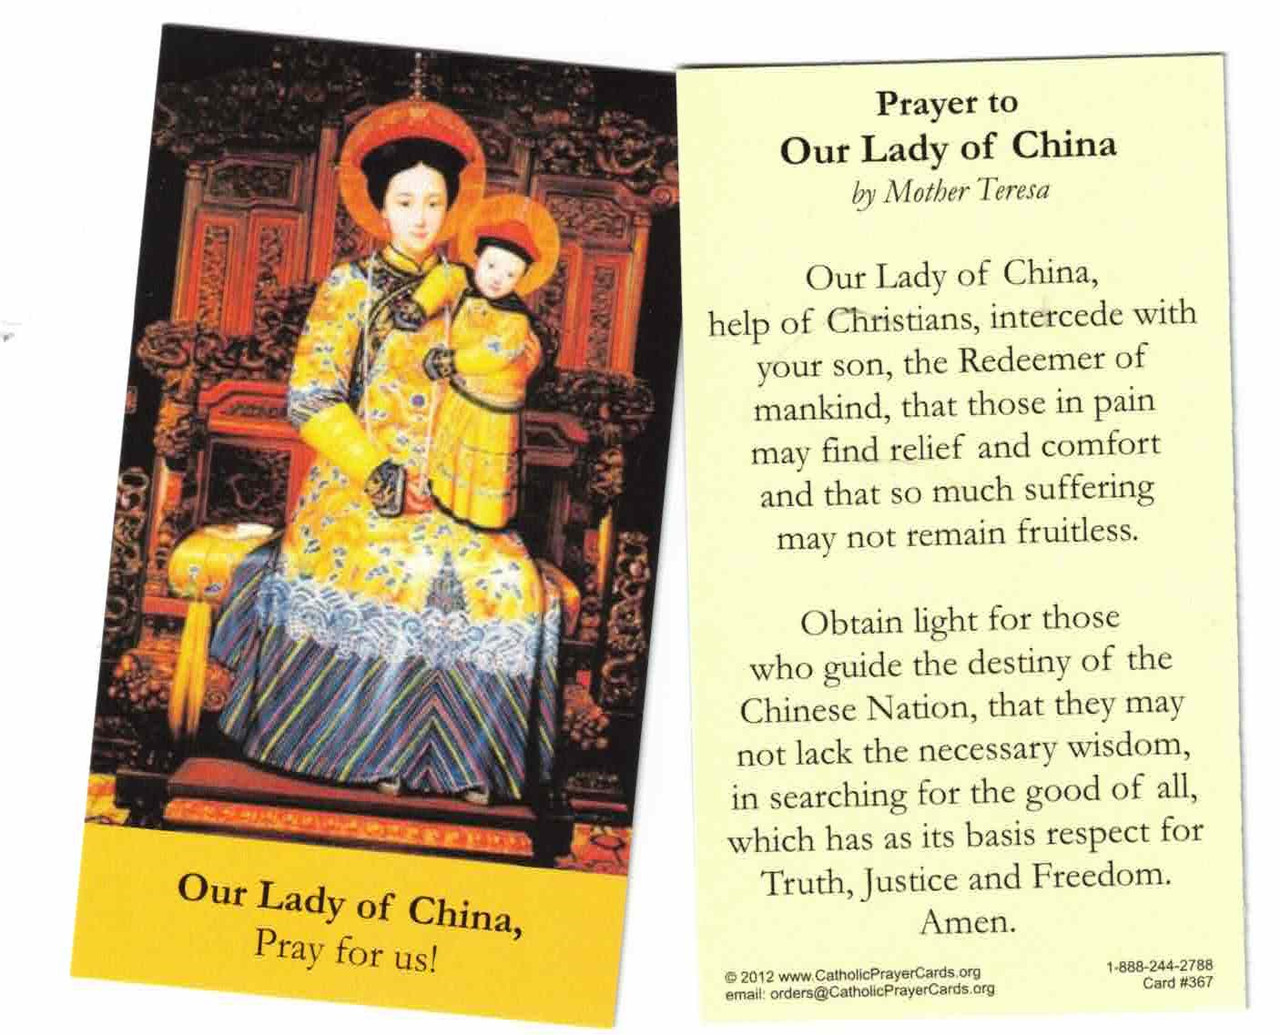 Prayer to Our Lady of China by Saint Mother Teresa